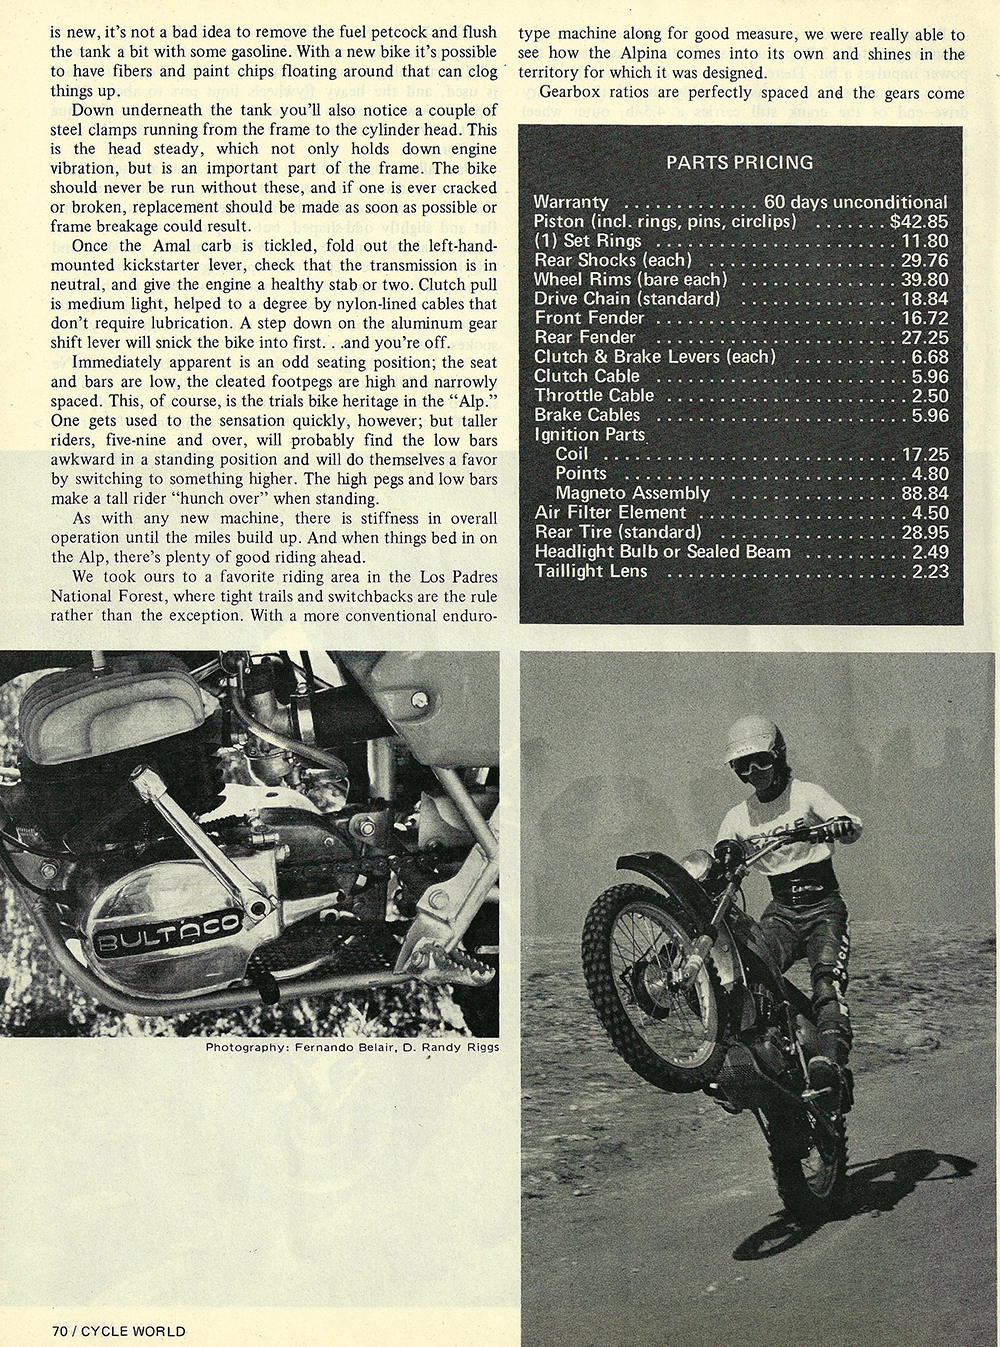 1975 Bultaco Alpina 350 road test 05.jpg